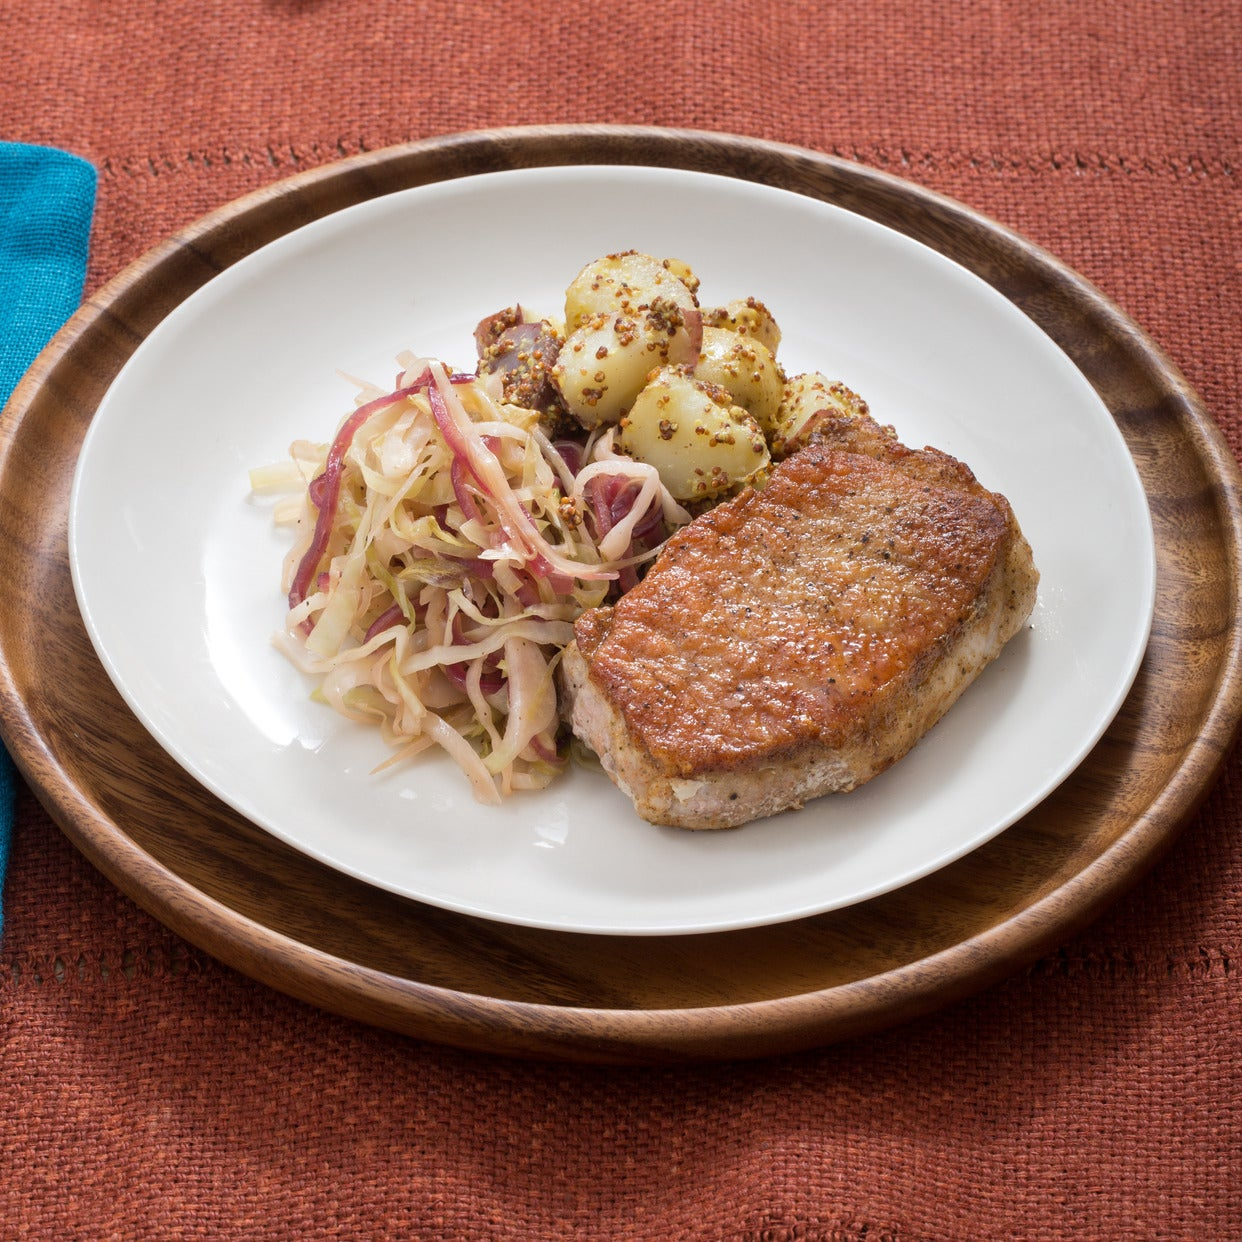 Braised cabbage with potatoes - the best recipes 46